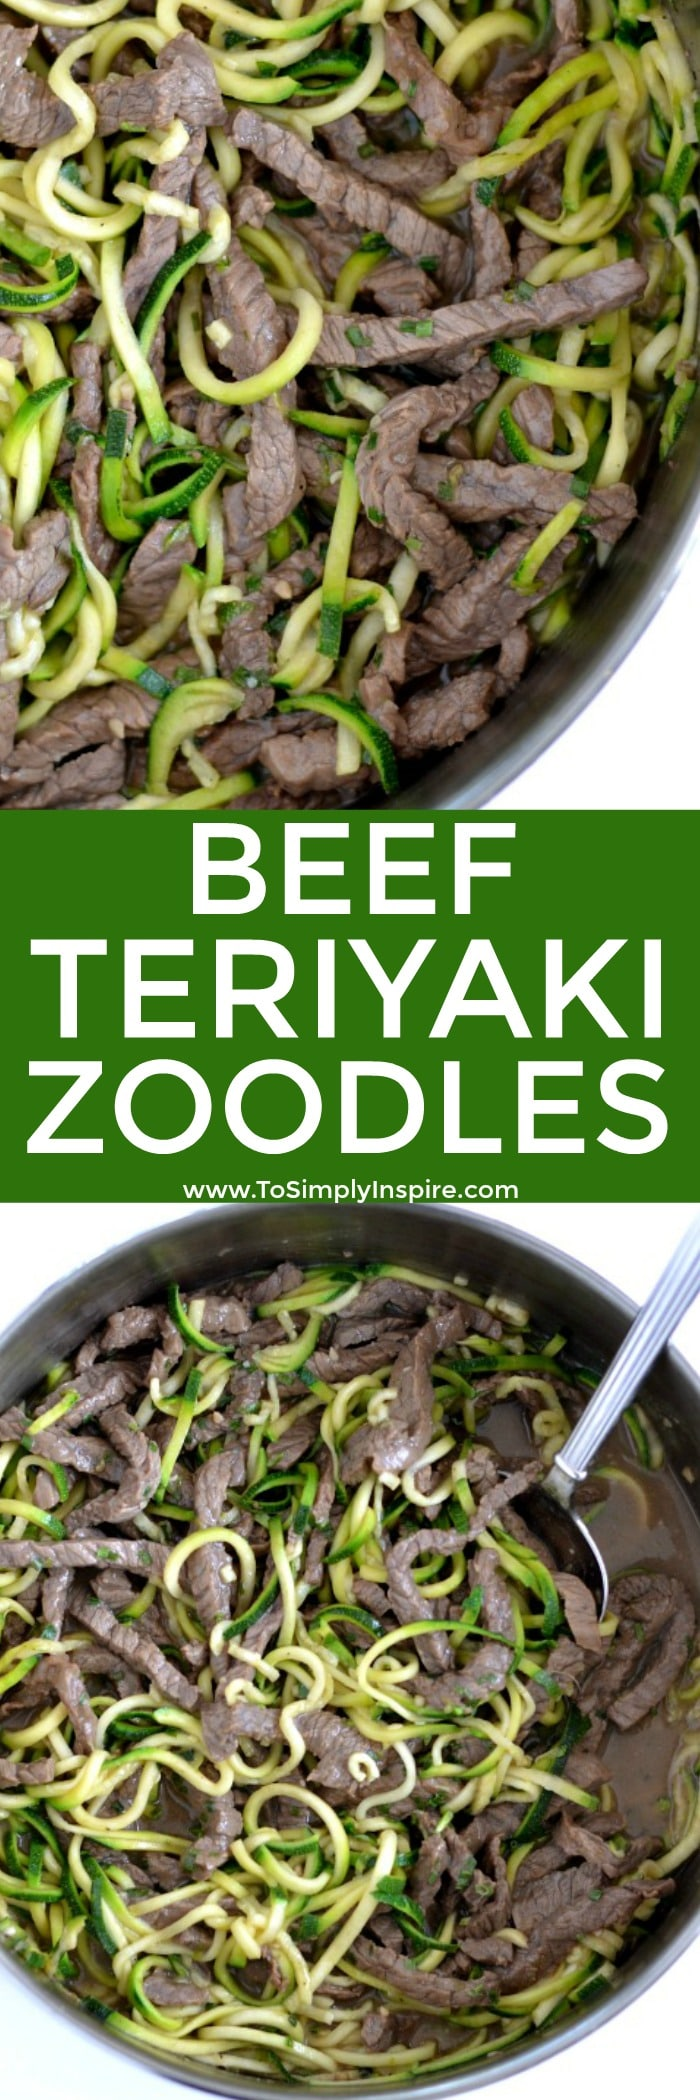 Easy beef teriyaki zoodles made with all natural ingredients and ready in less than 30 minutes. Perfect juicy, tender beef in a simple, delicious homemade teriyaki sauce.